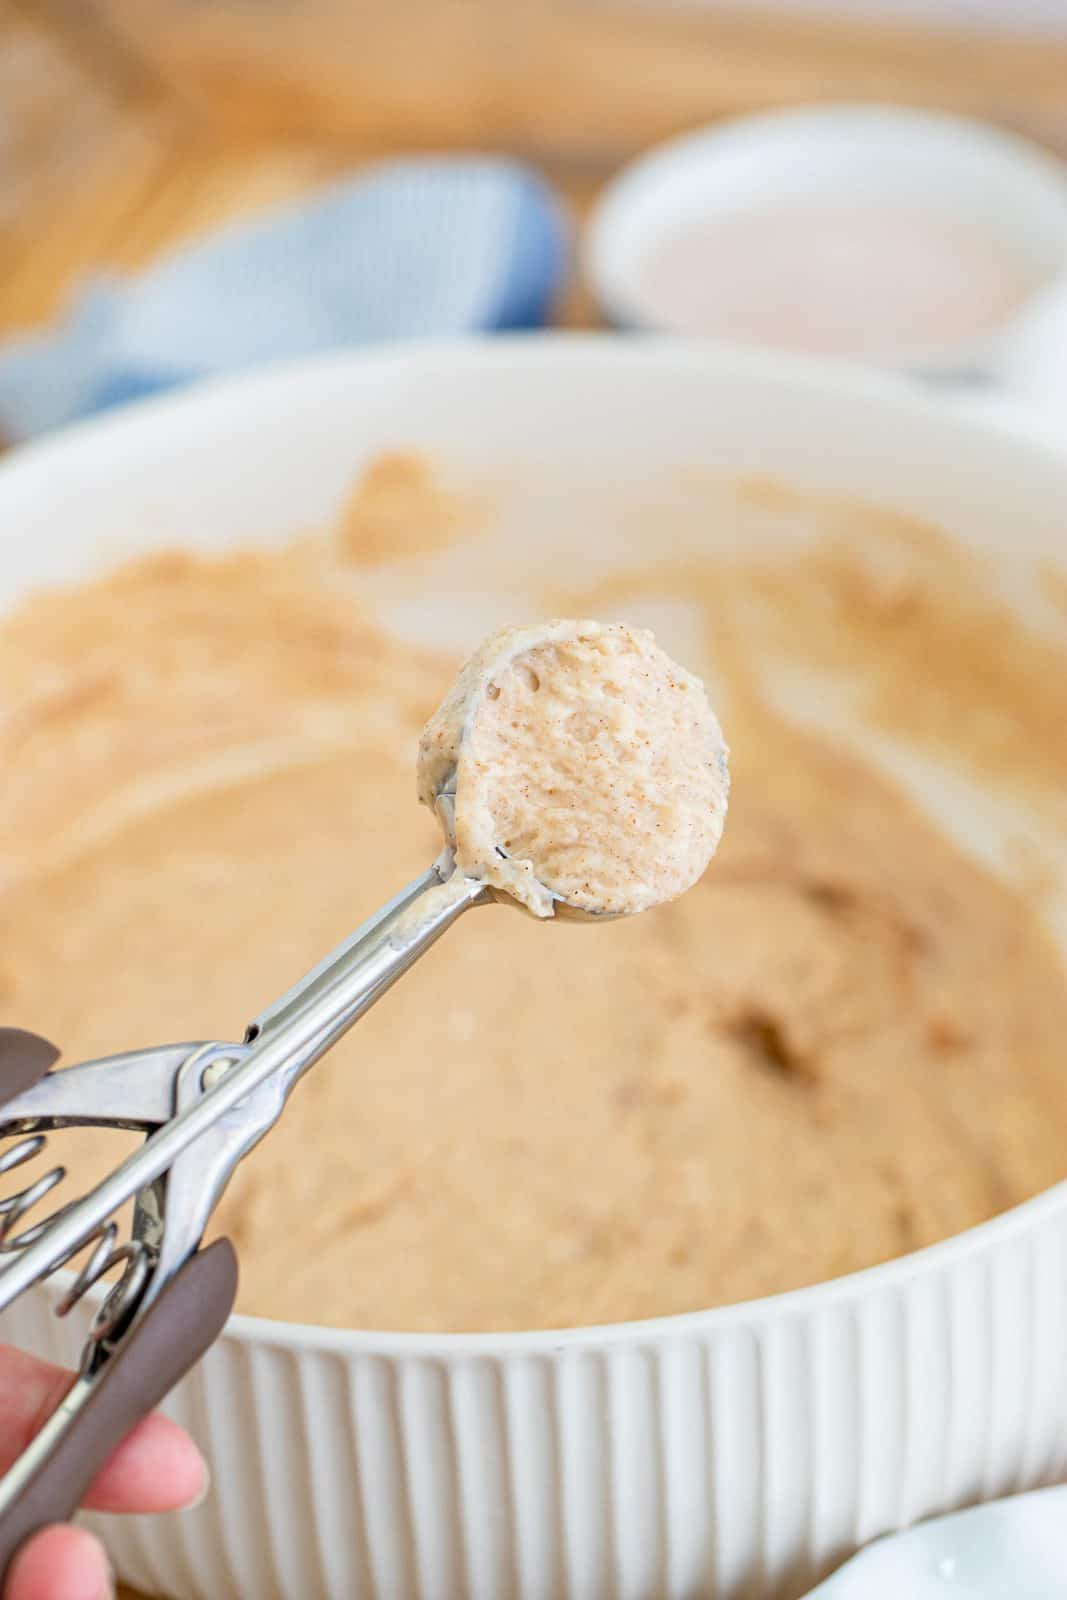 spring loaded scooper with pancake puppy batter being scooped from a bowl of batter.